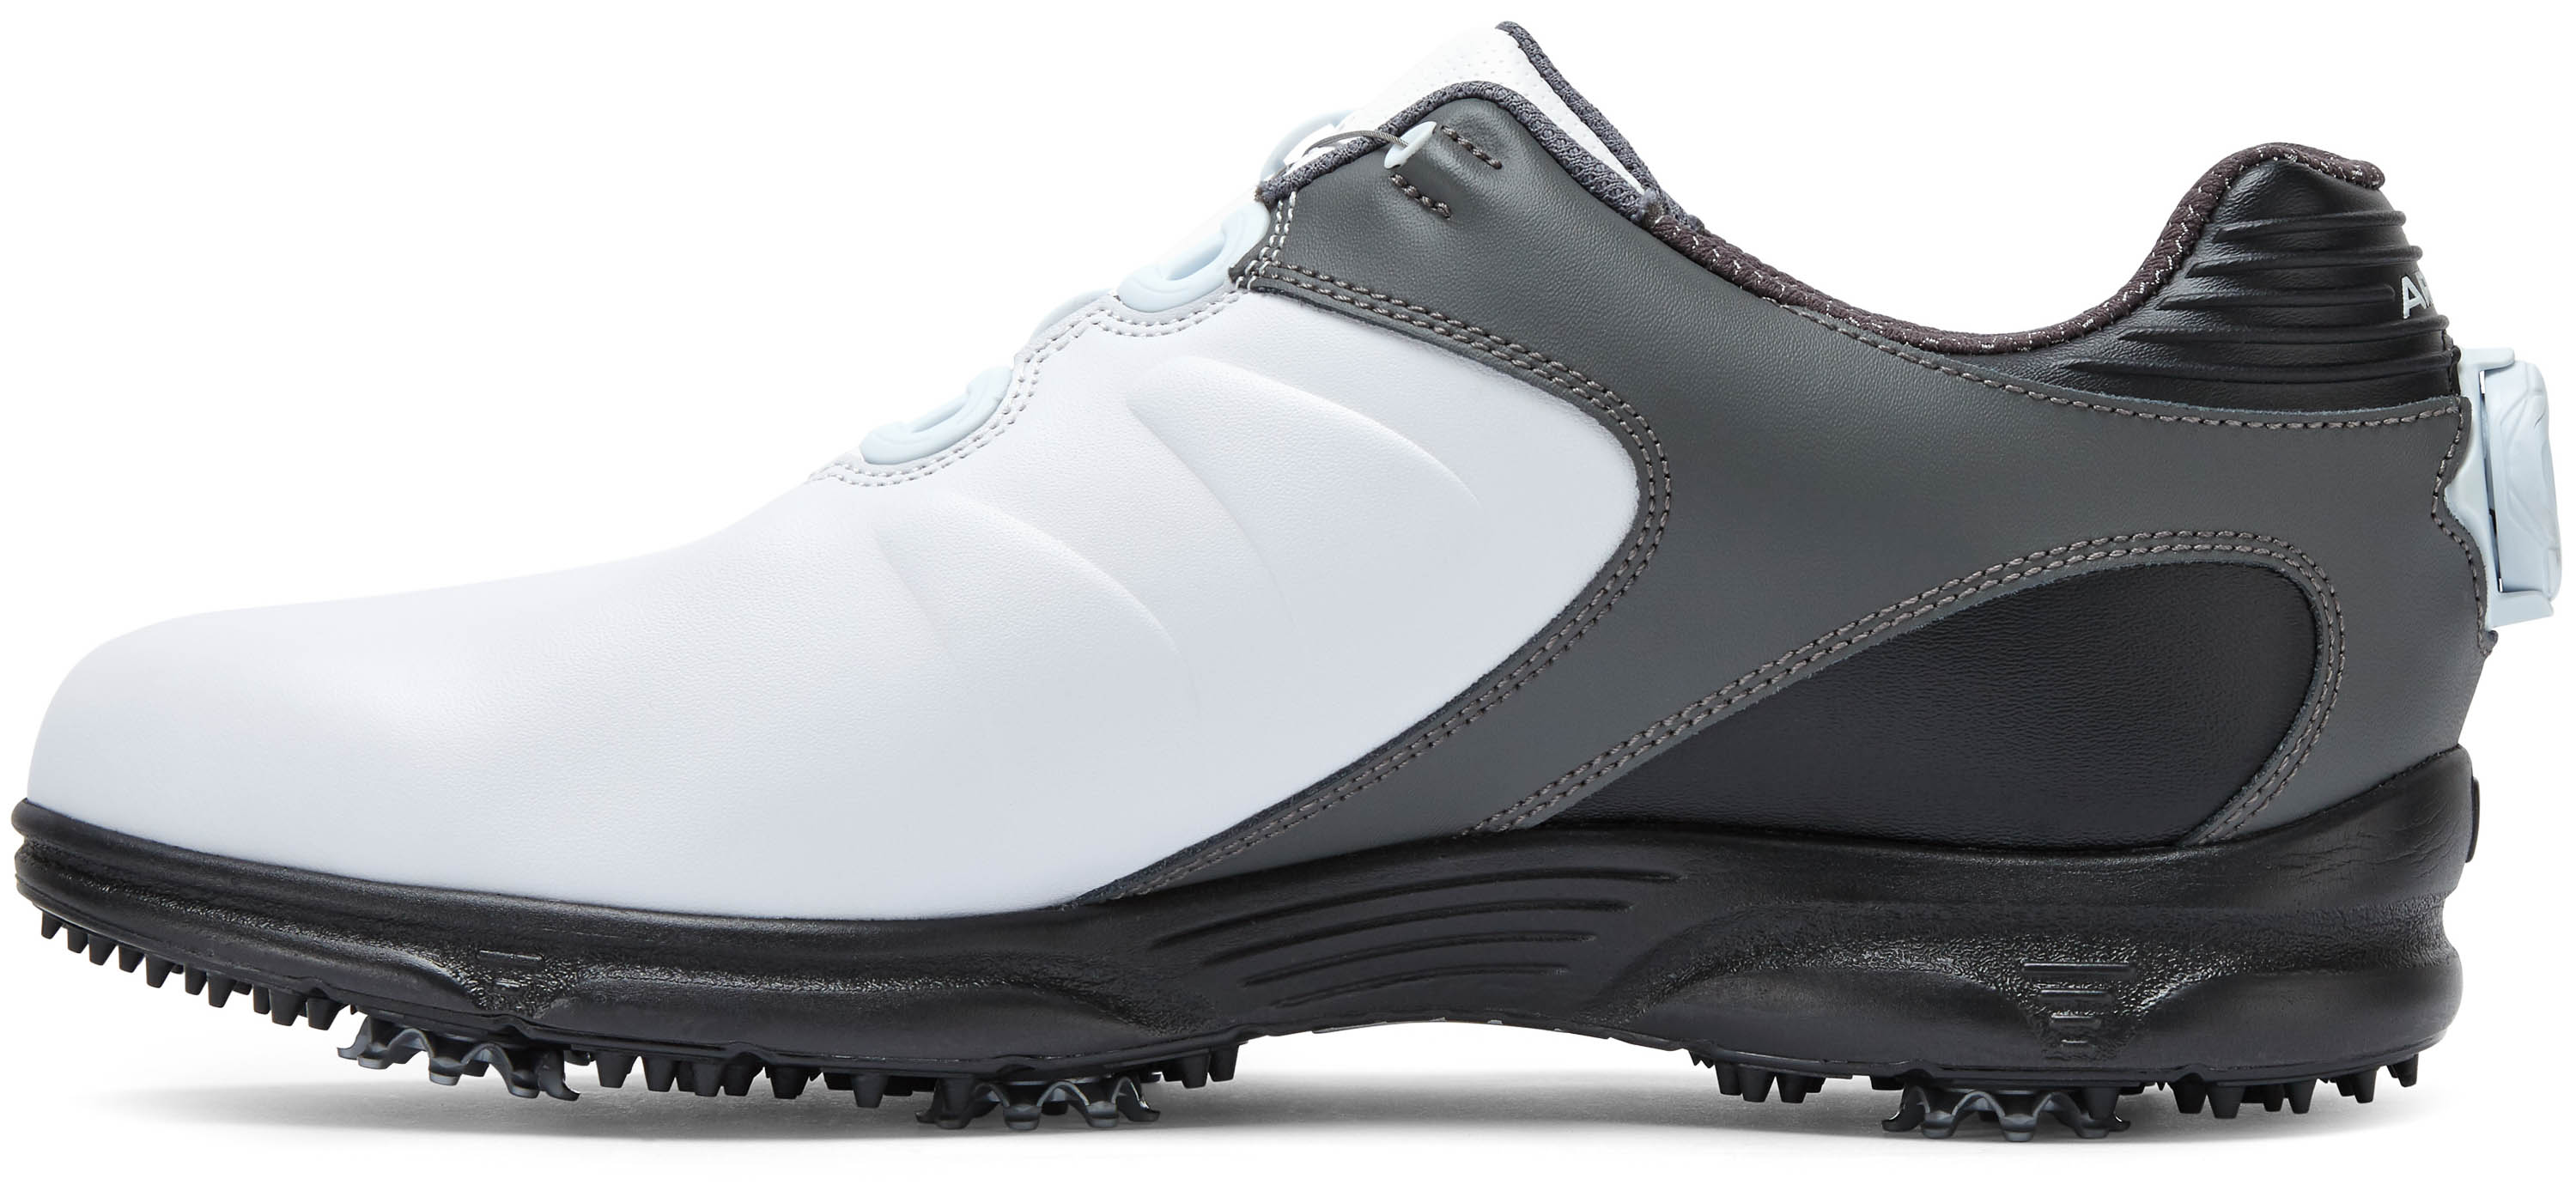 FootJoy FJ ARC XT BOA, W Leisten, whiteblackgray